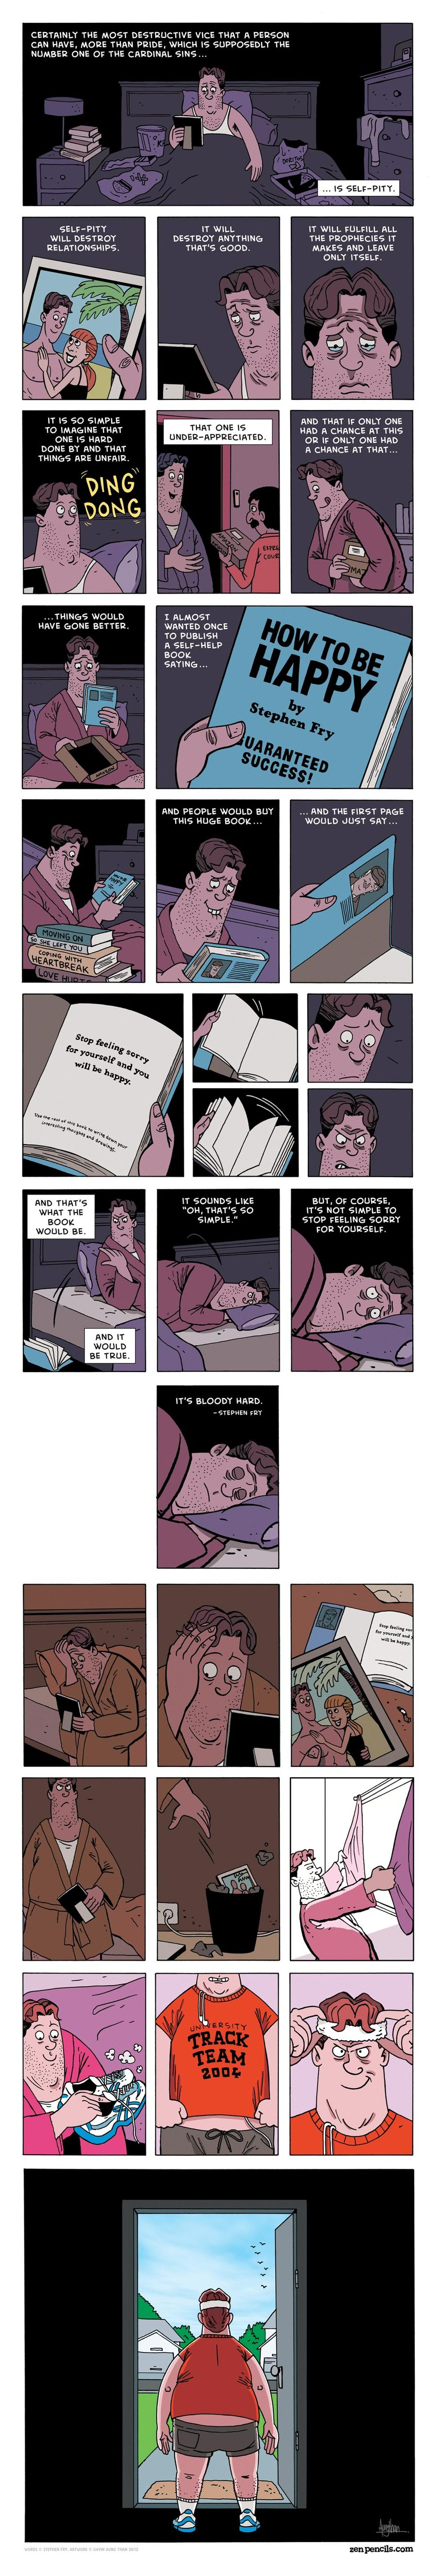 Zen Pencils Comic Strip for January 20, 2014